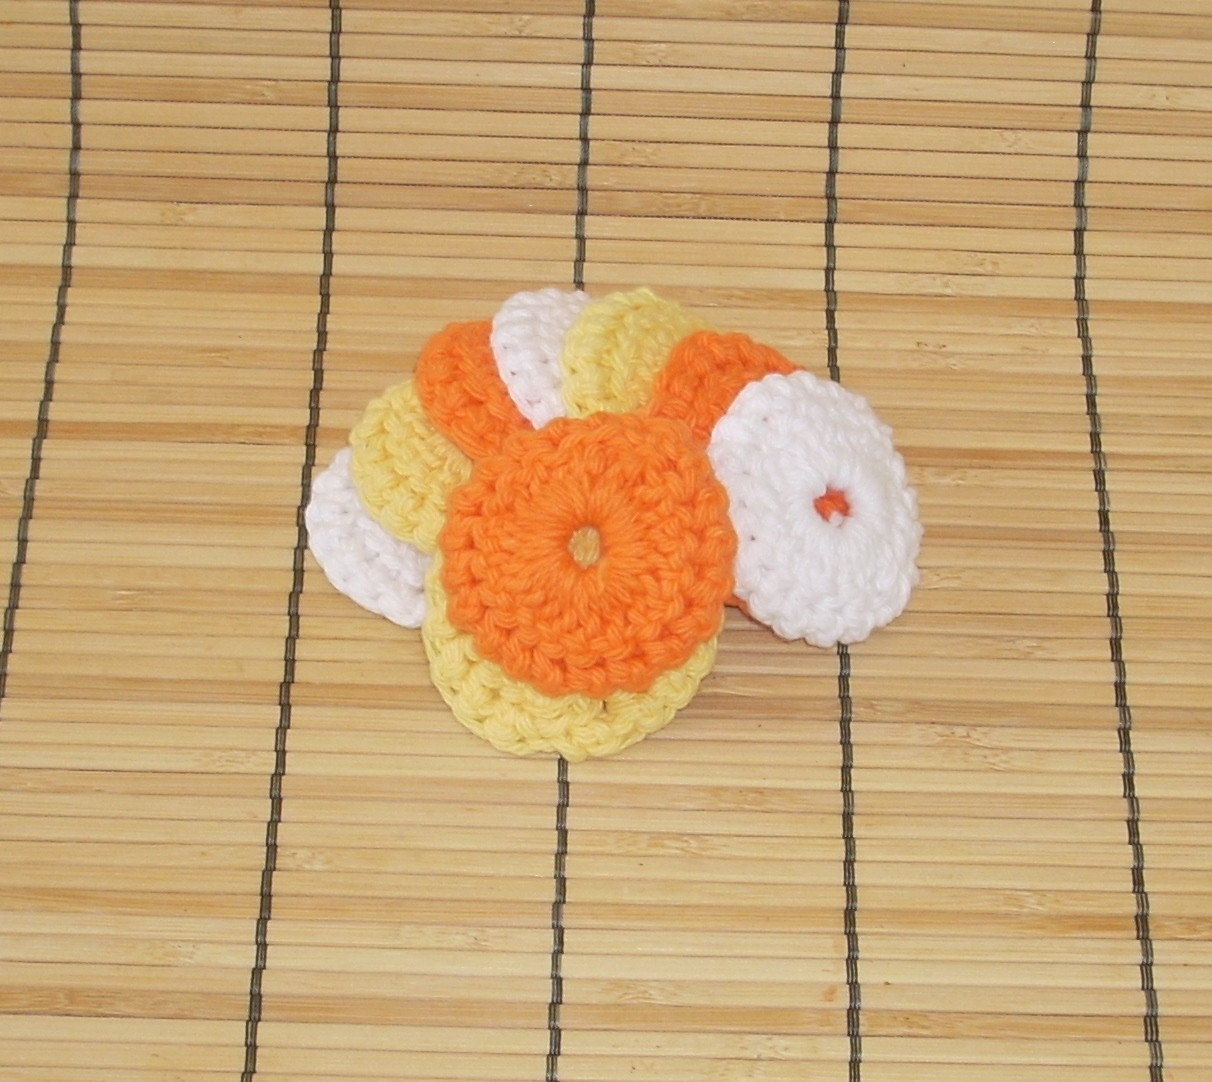 2 Inch Cotton Pads, Cotton Ball Replacements, Set of 9, Lazy Daisy